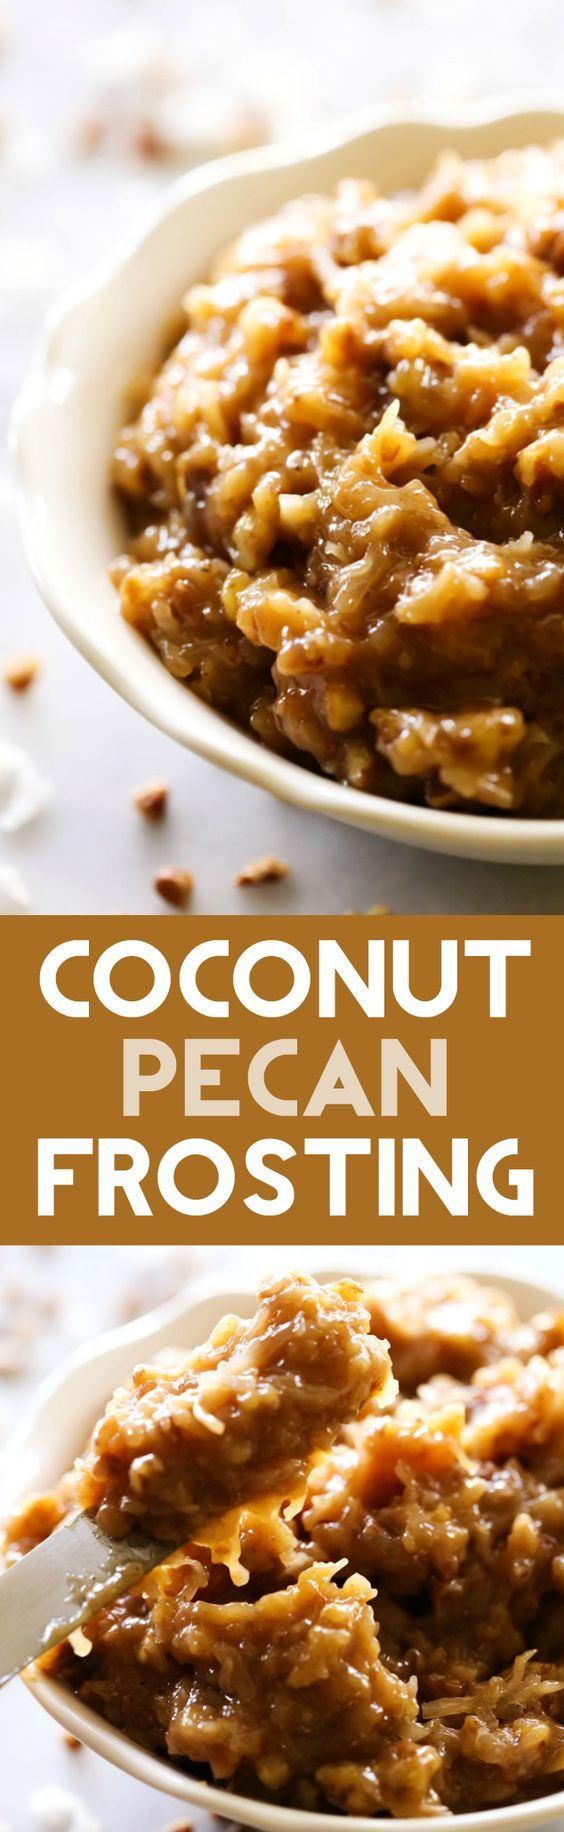 Check out Coconut Pecan Frosting. It's so easy to make! | Coconut ...